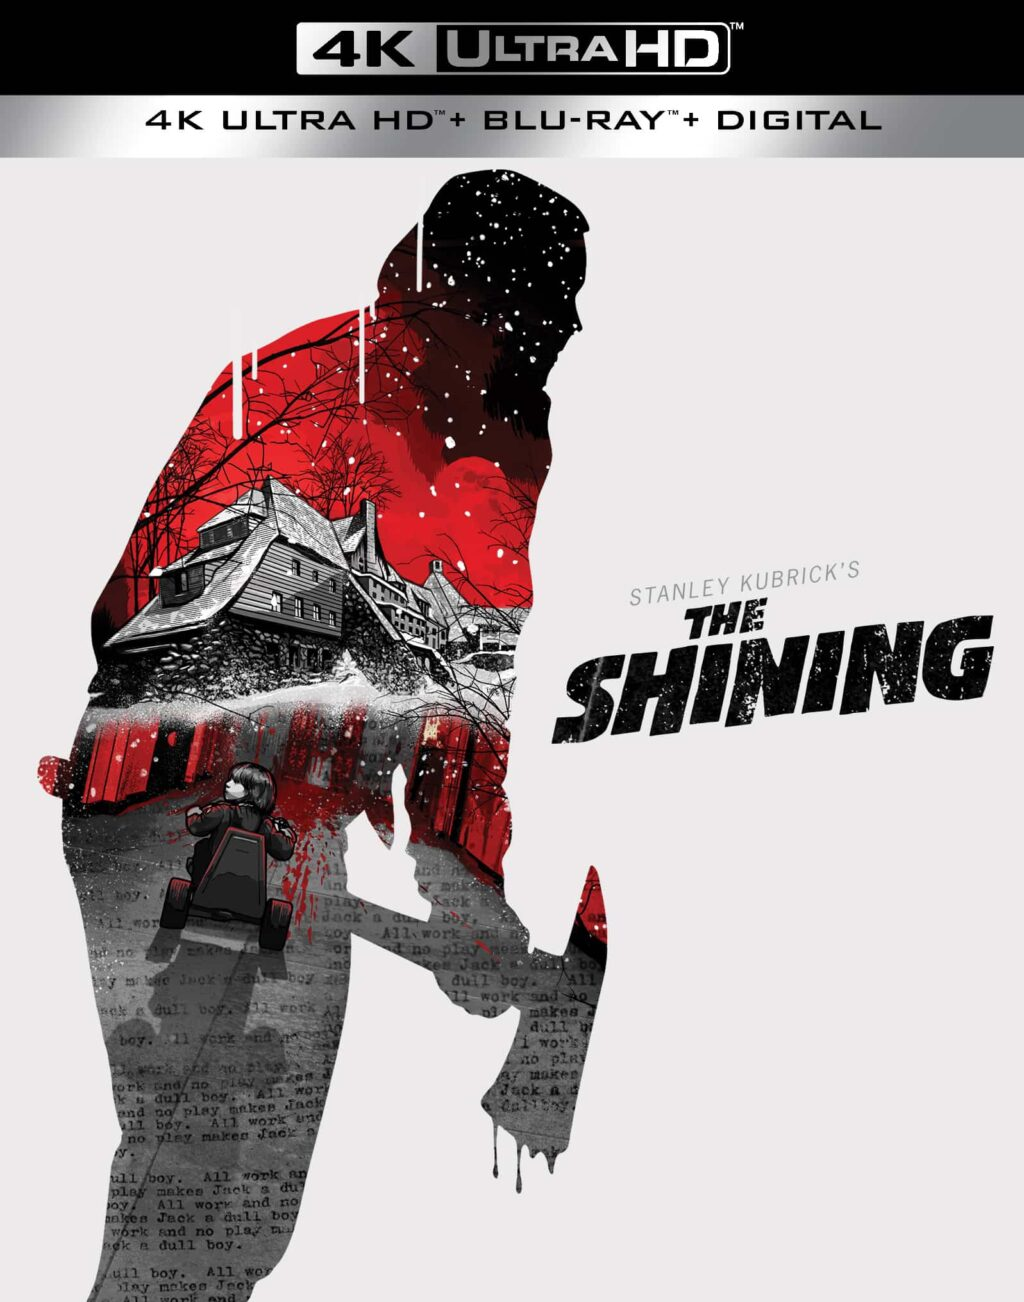 TheShining 4K 1024x1302 - THE SHINING TV Series Coming to HBO Max From J.J. Abrams!